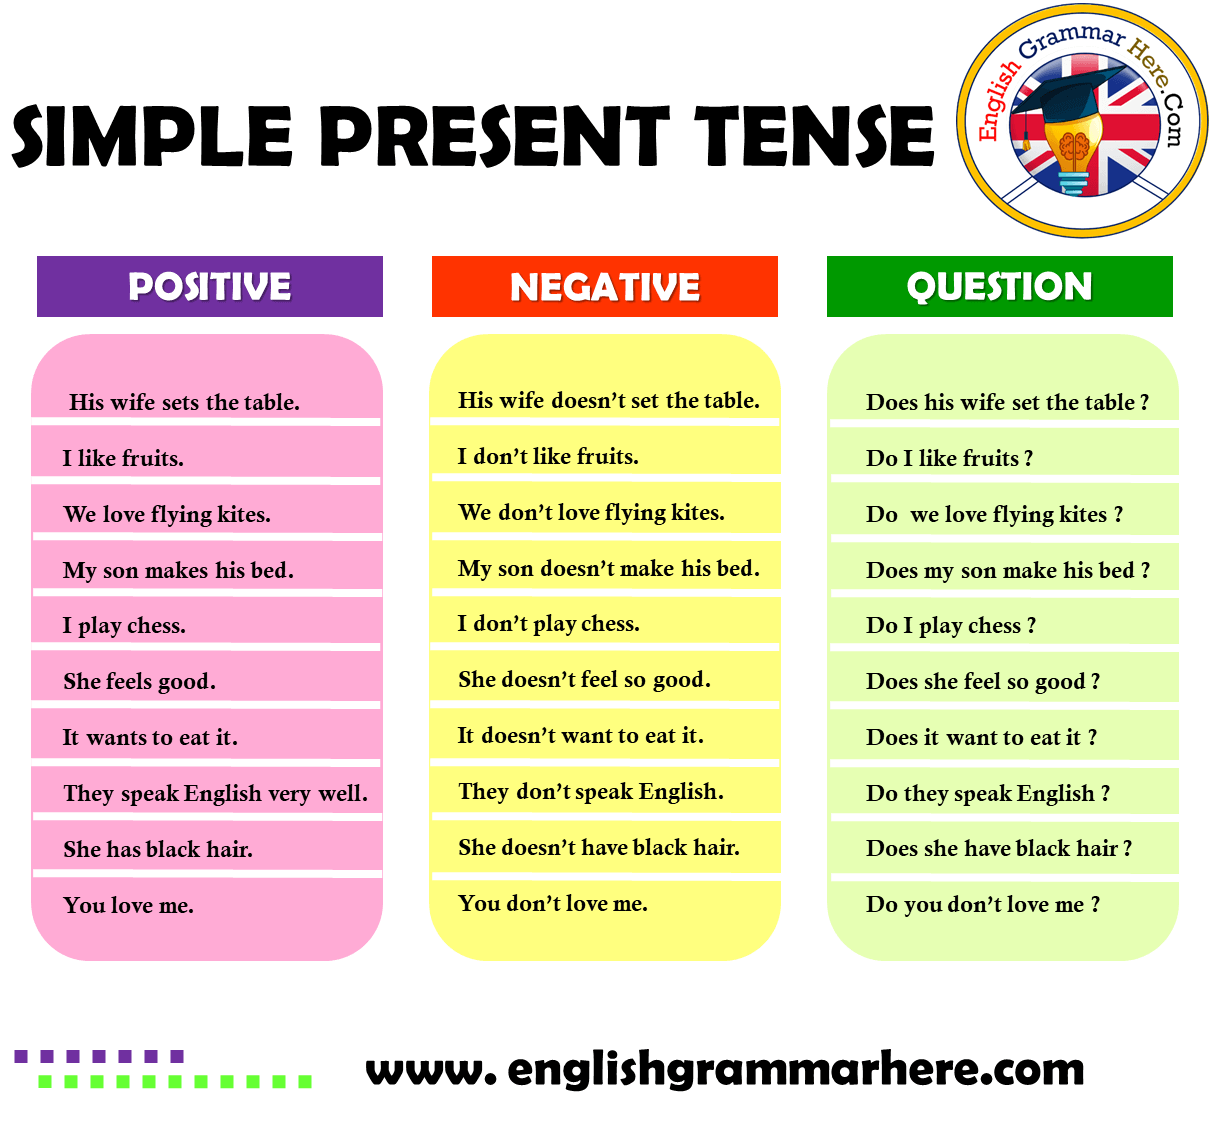 English Simple Present Tense Positive, Negative, Question Examples